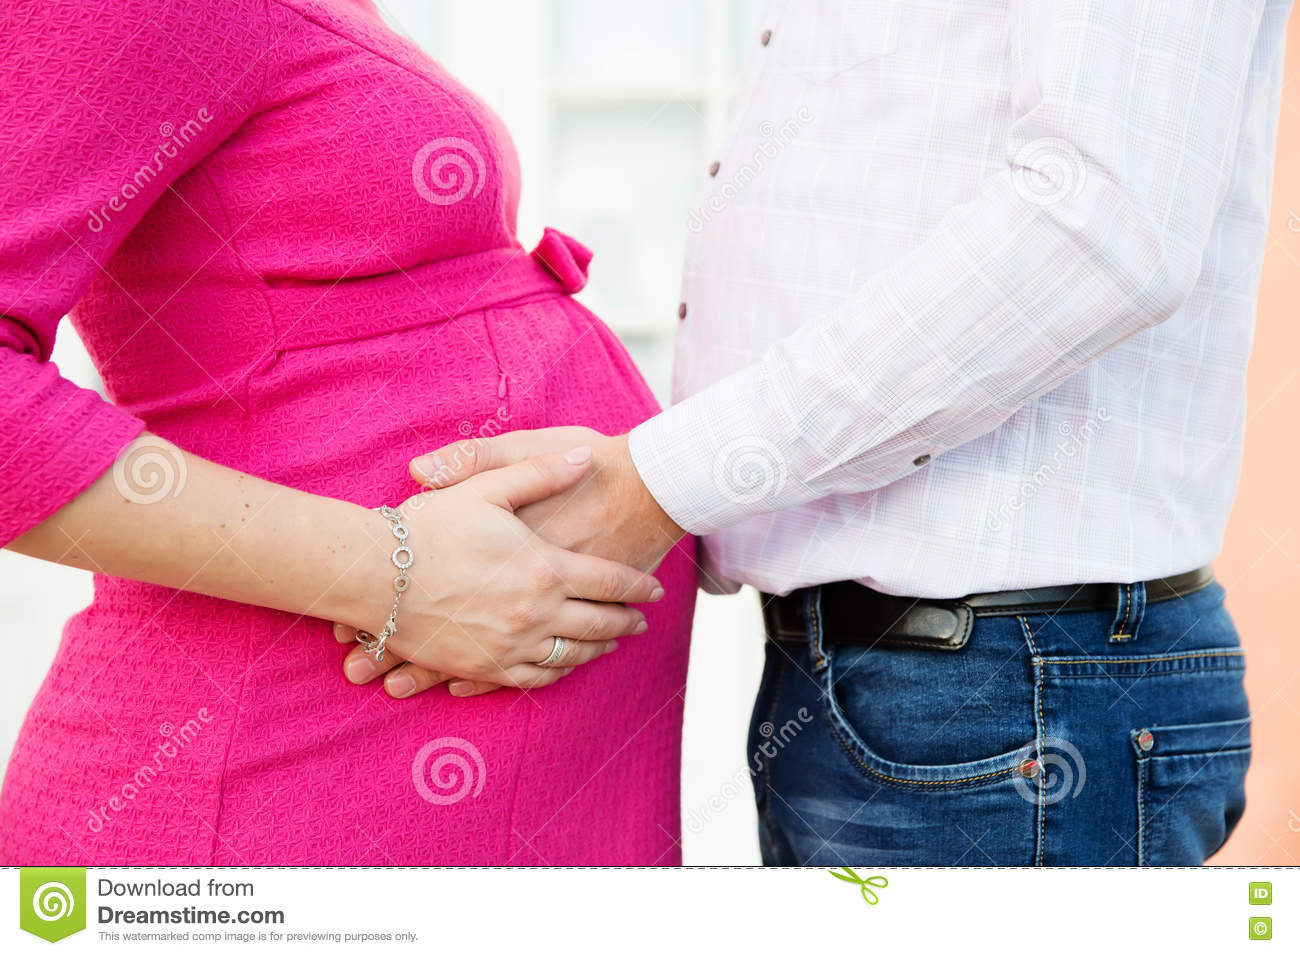 Parents Hands On The Pregnant Belly Stock Image - Image of expecting ...